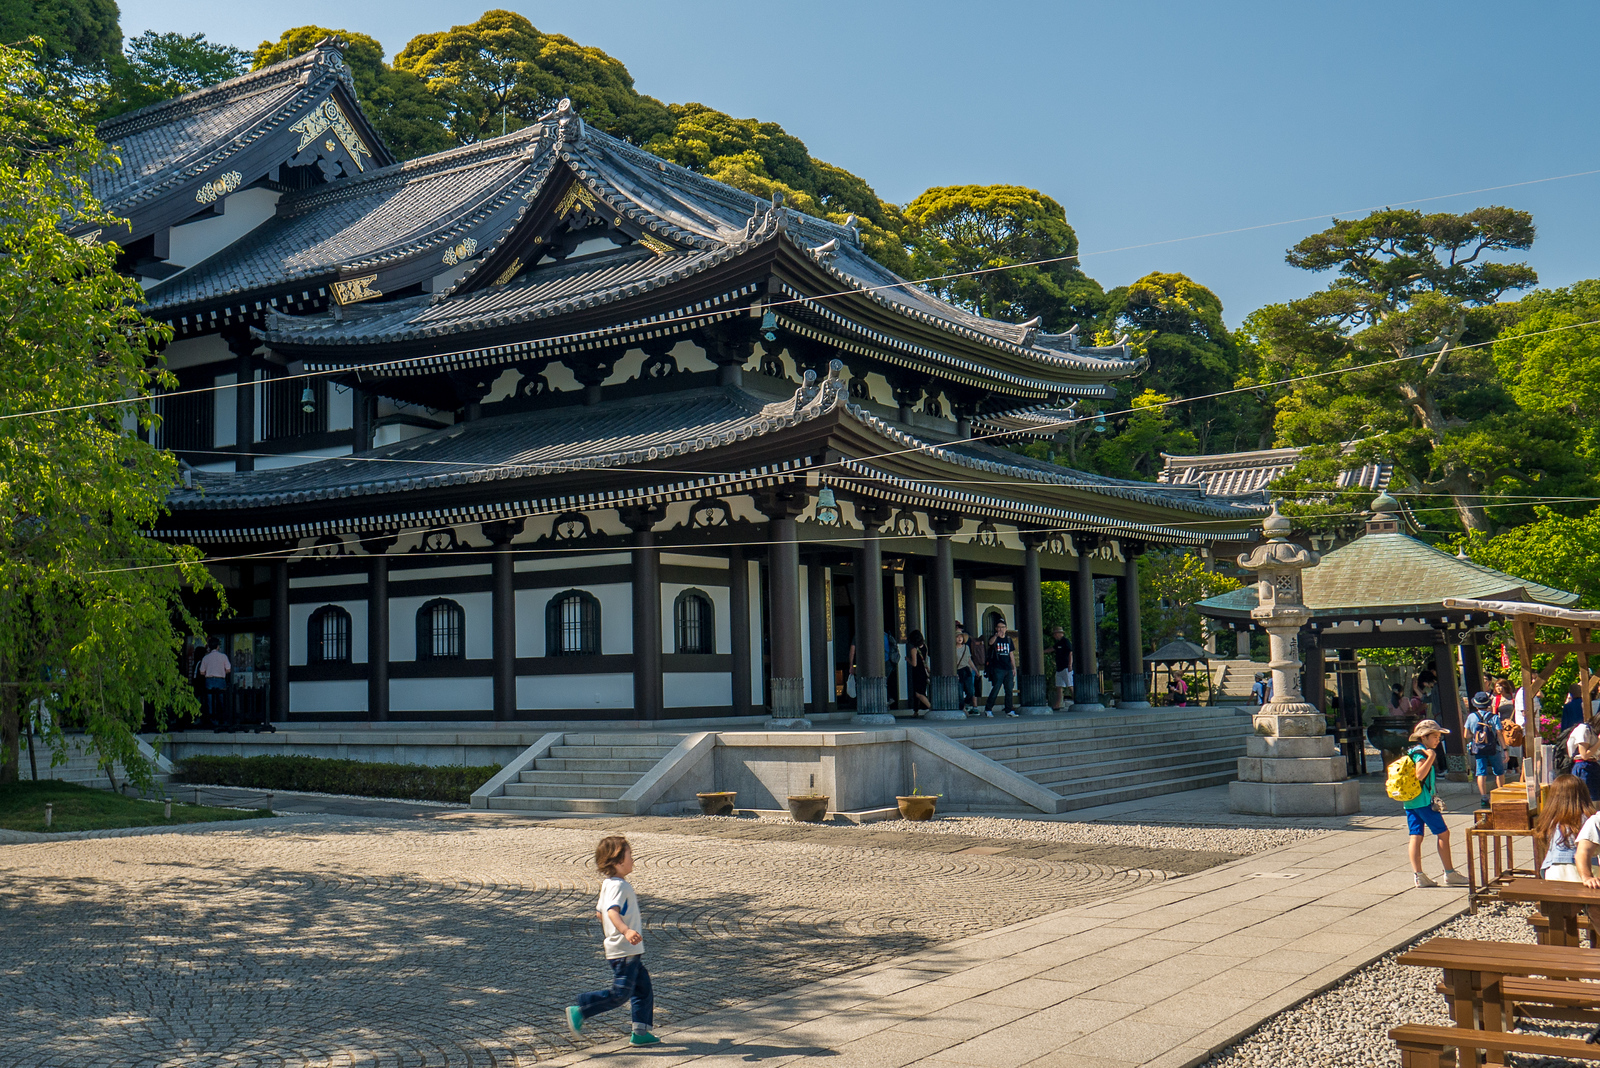 Hase-dera Temple in Kamakura, Japan